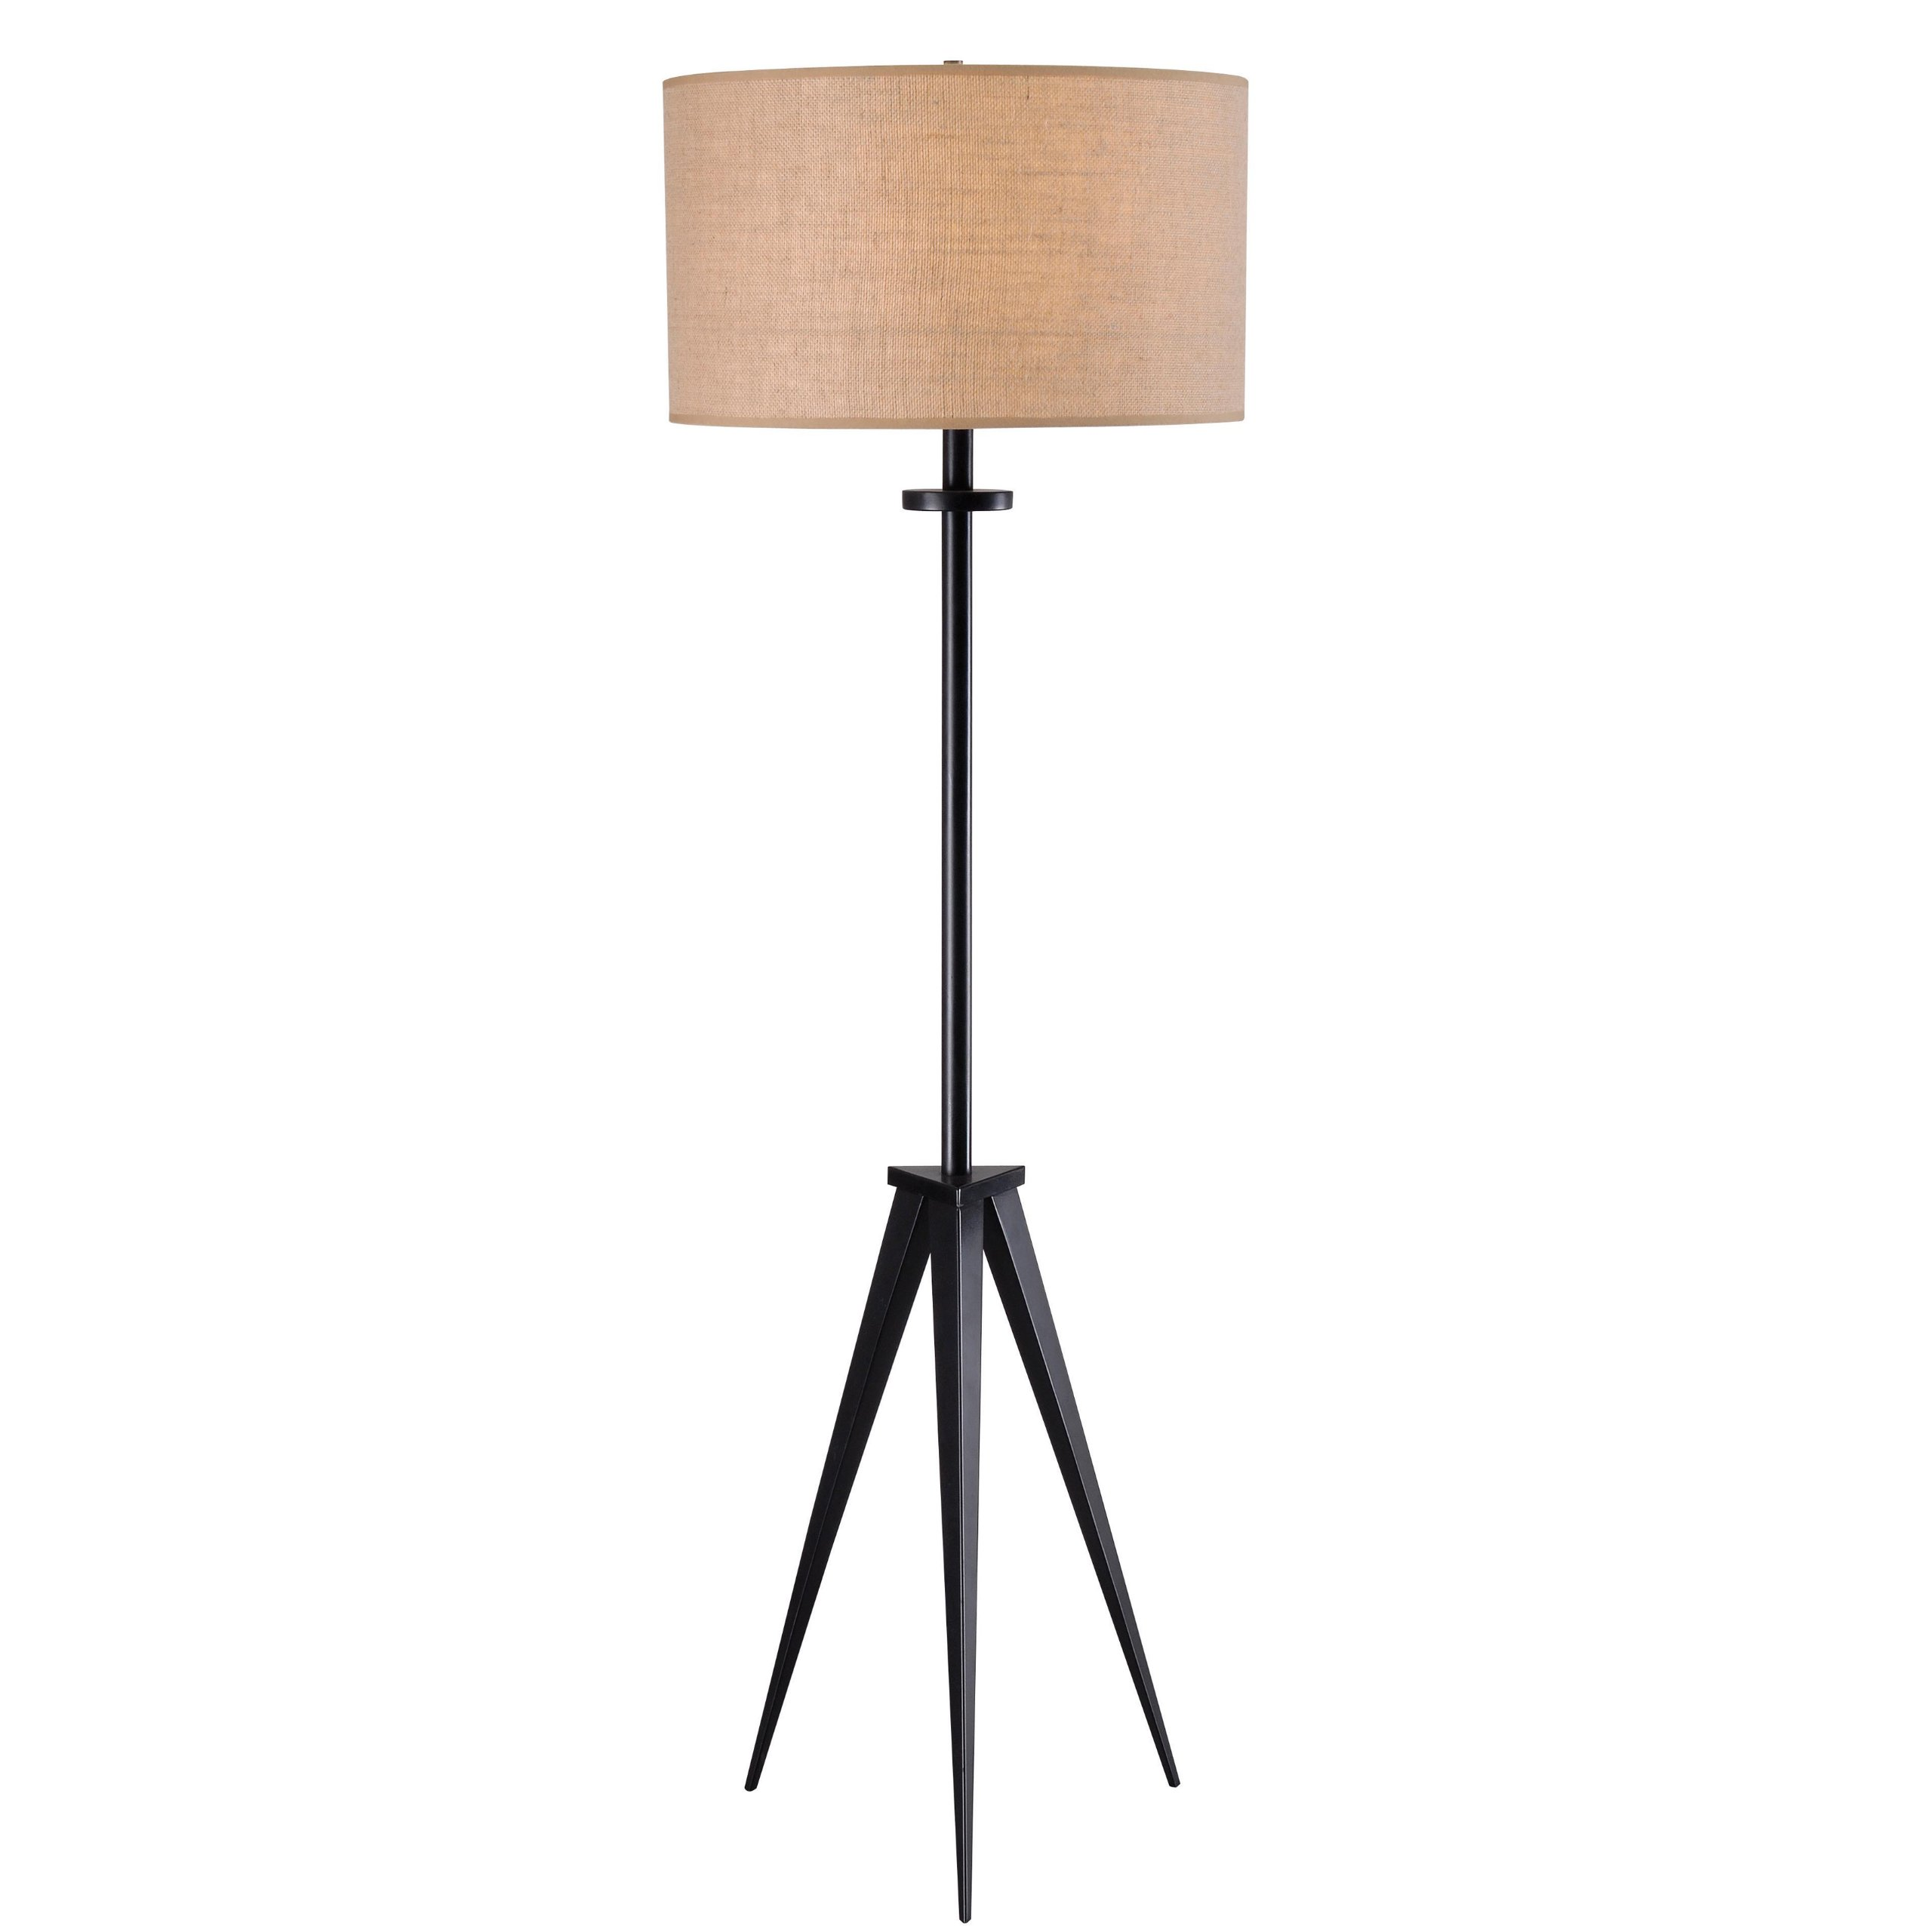 Kenroy Home 32263ORB Foster Floor Lamp, Oil Rubbed Bronze Finish